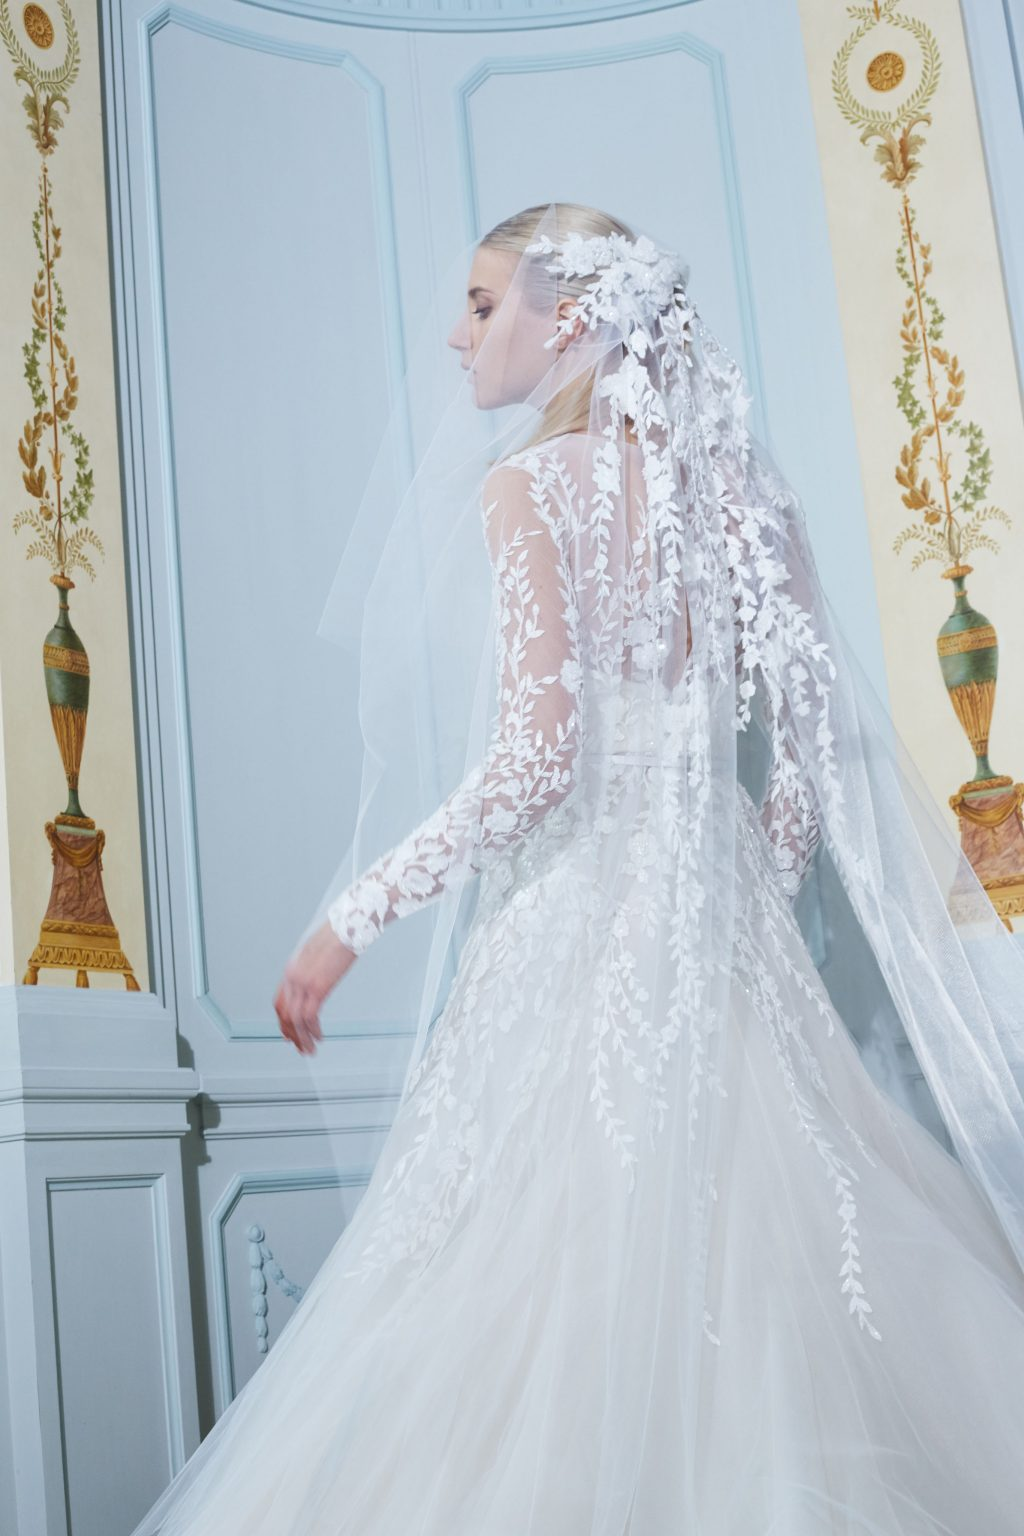 Celebrating the Ethereal Symmetry of Elie Saab's New Bridal Collection